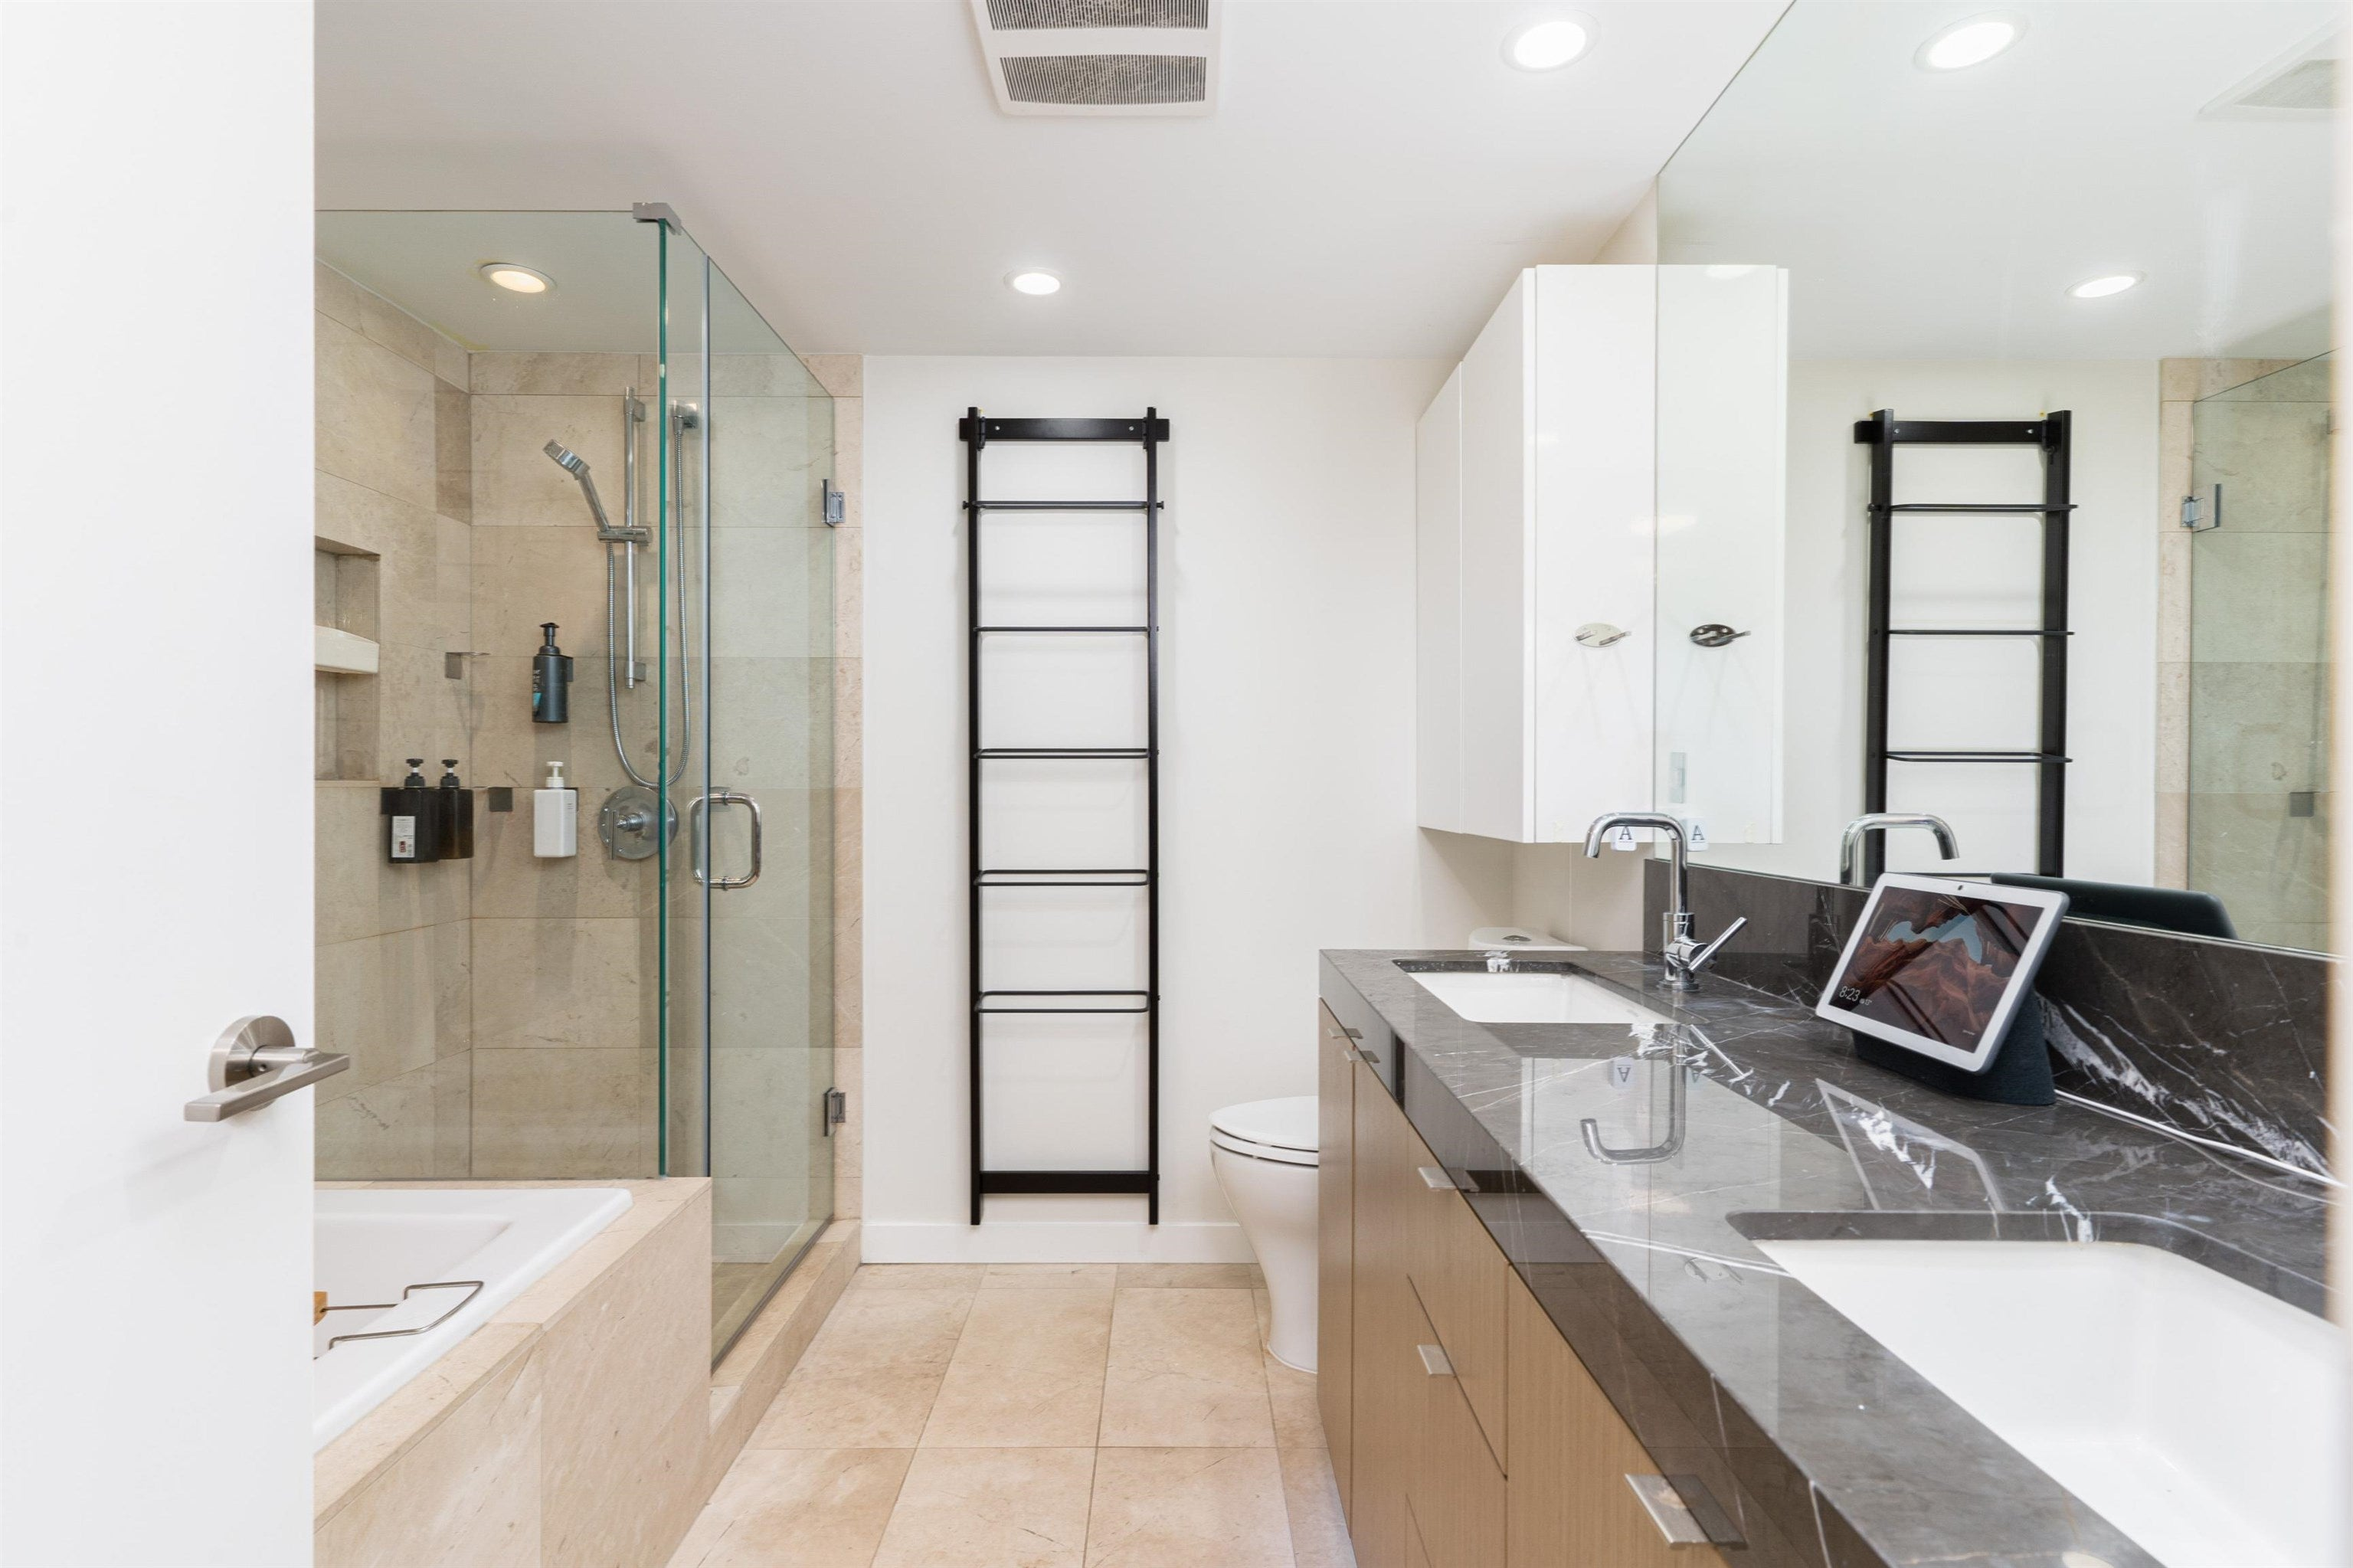 306 112 E 13TH STREET - Central Lonsdale Apartment/Condo for sale, 2 Bedrooms (R2619655) - #19